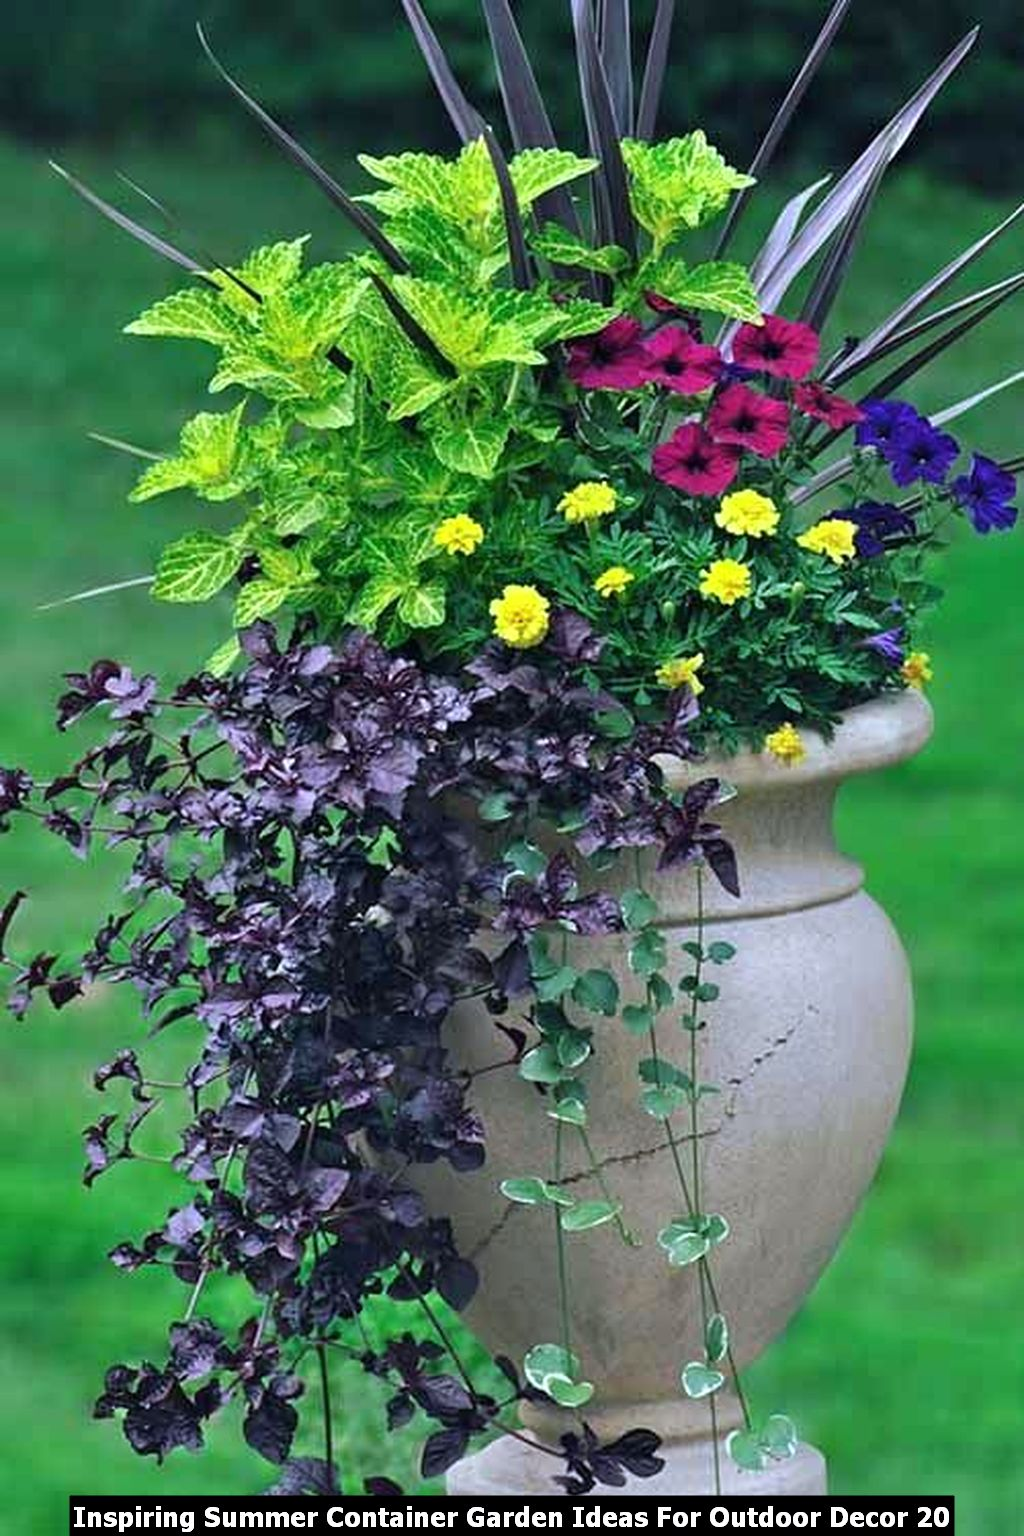 Inspiring Summer Container Garden Ideas For Outdoor Decor 20